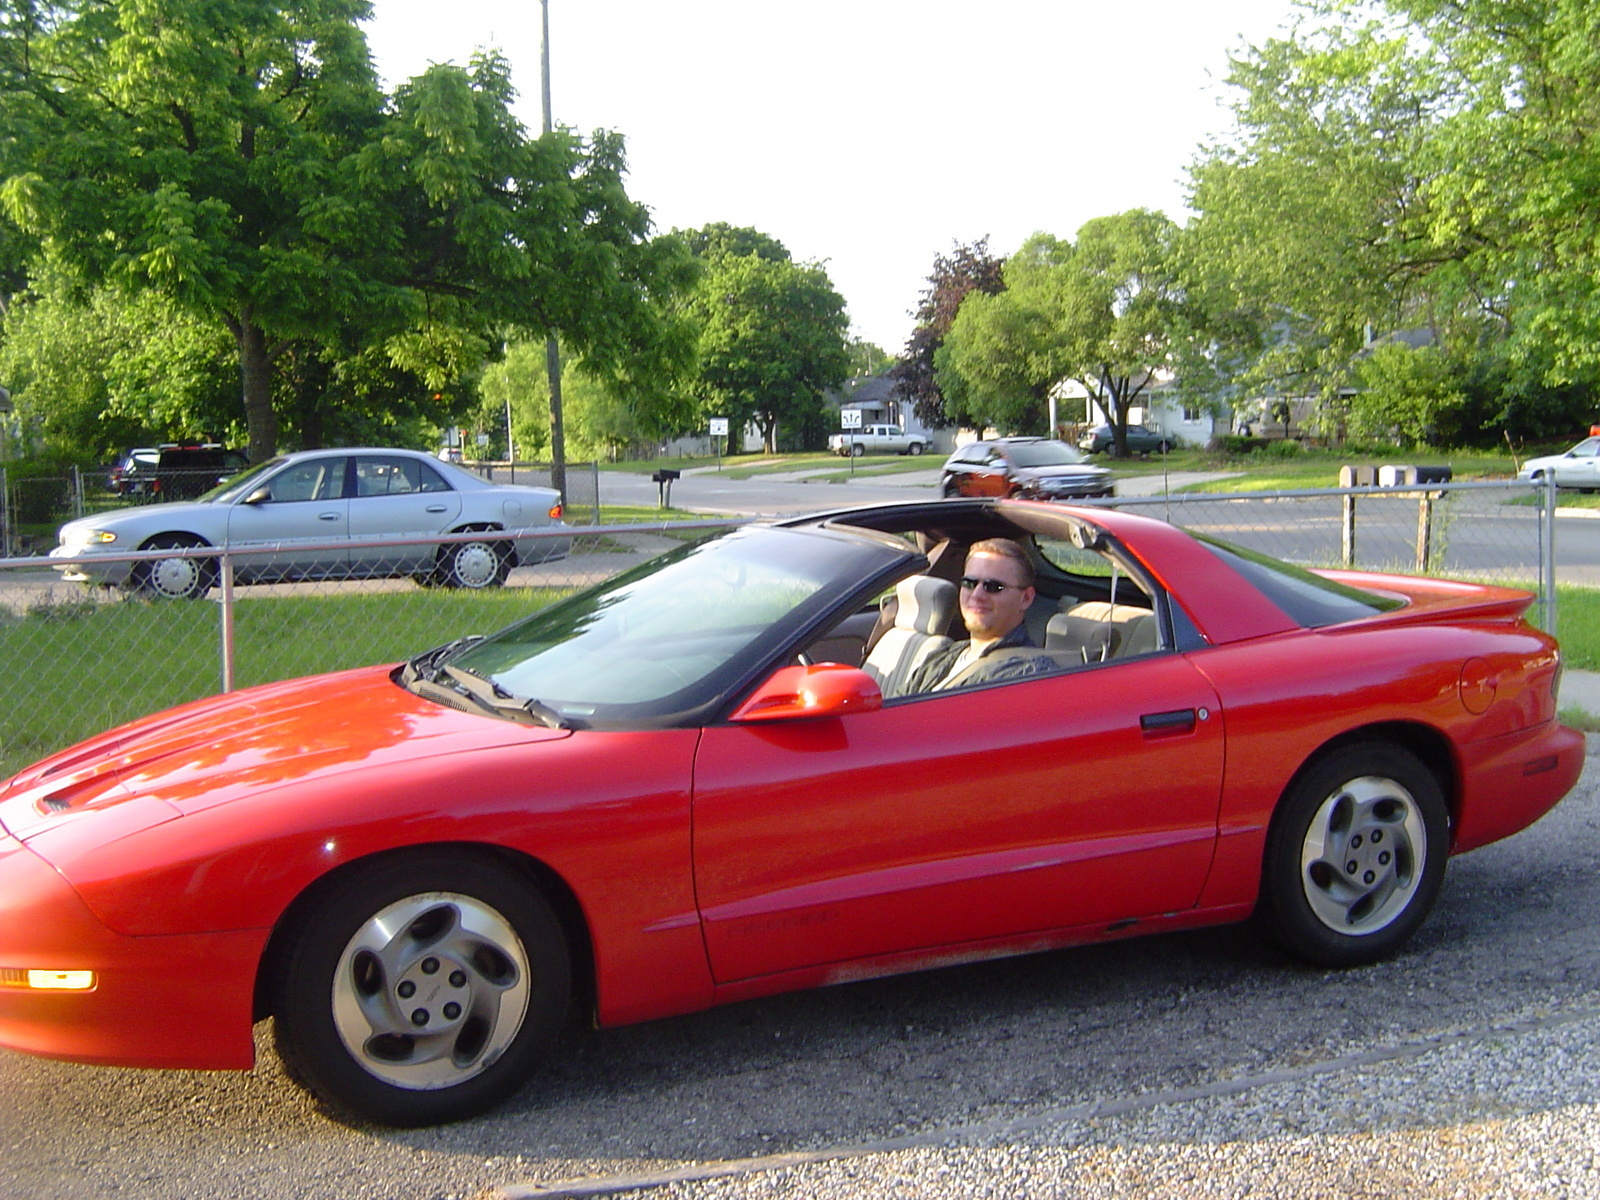 My grandson just bought a '95 Firebird! Does anyone know where the fuel  filter is?